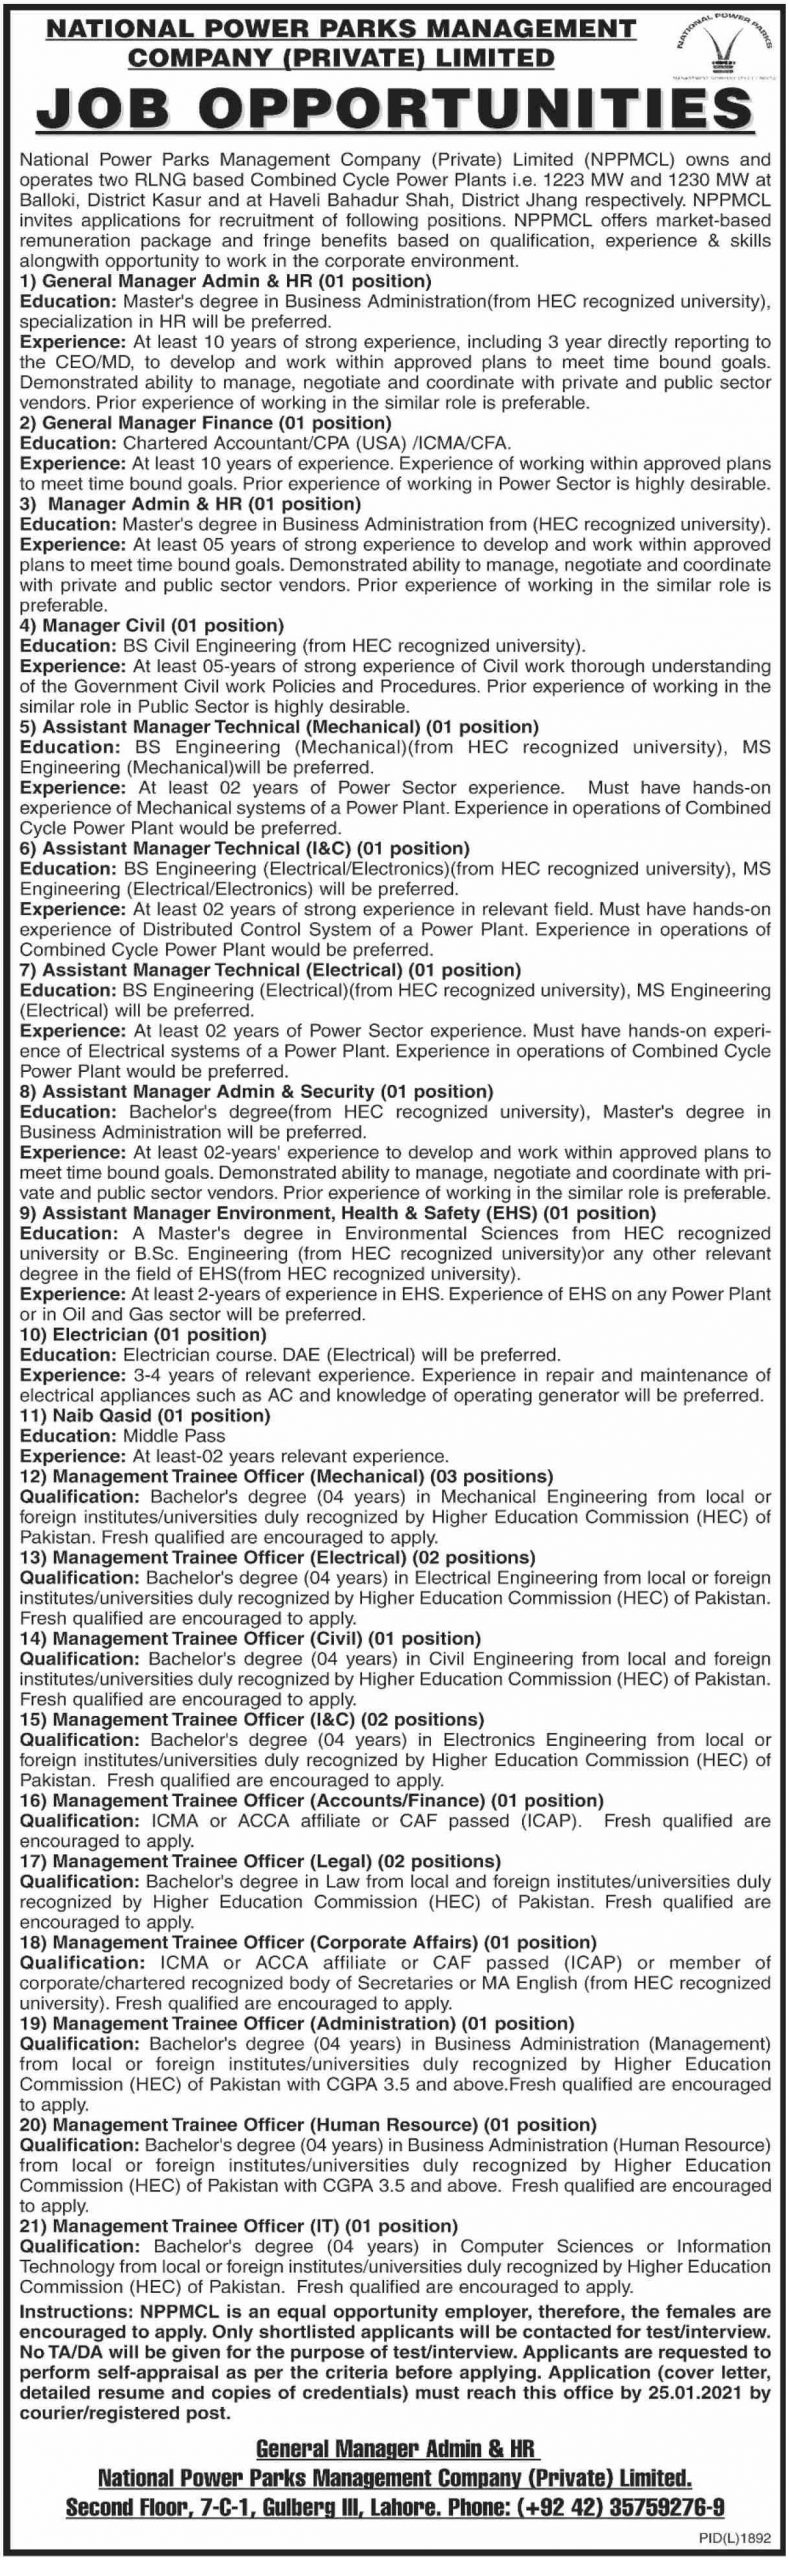 National Power Parks Management Company Pvt Limited Jobs January 2021